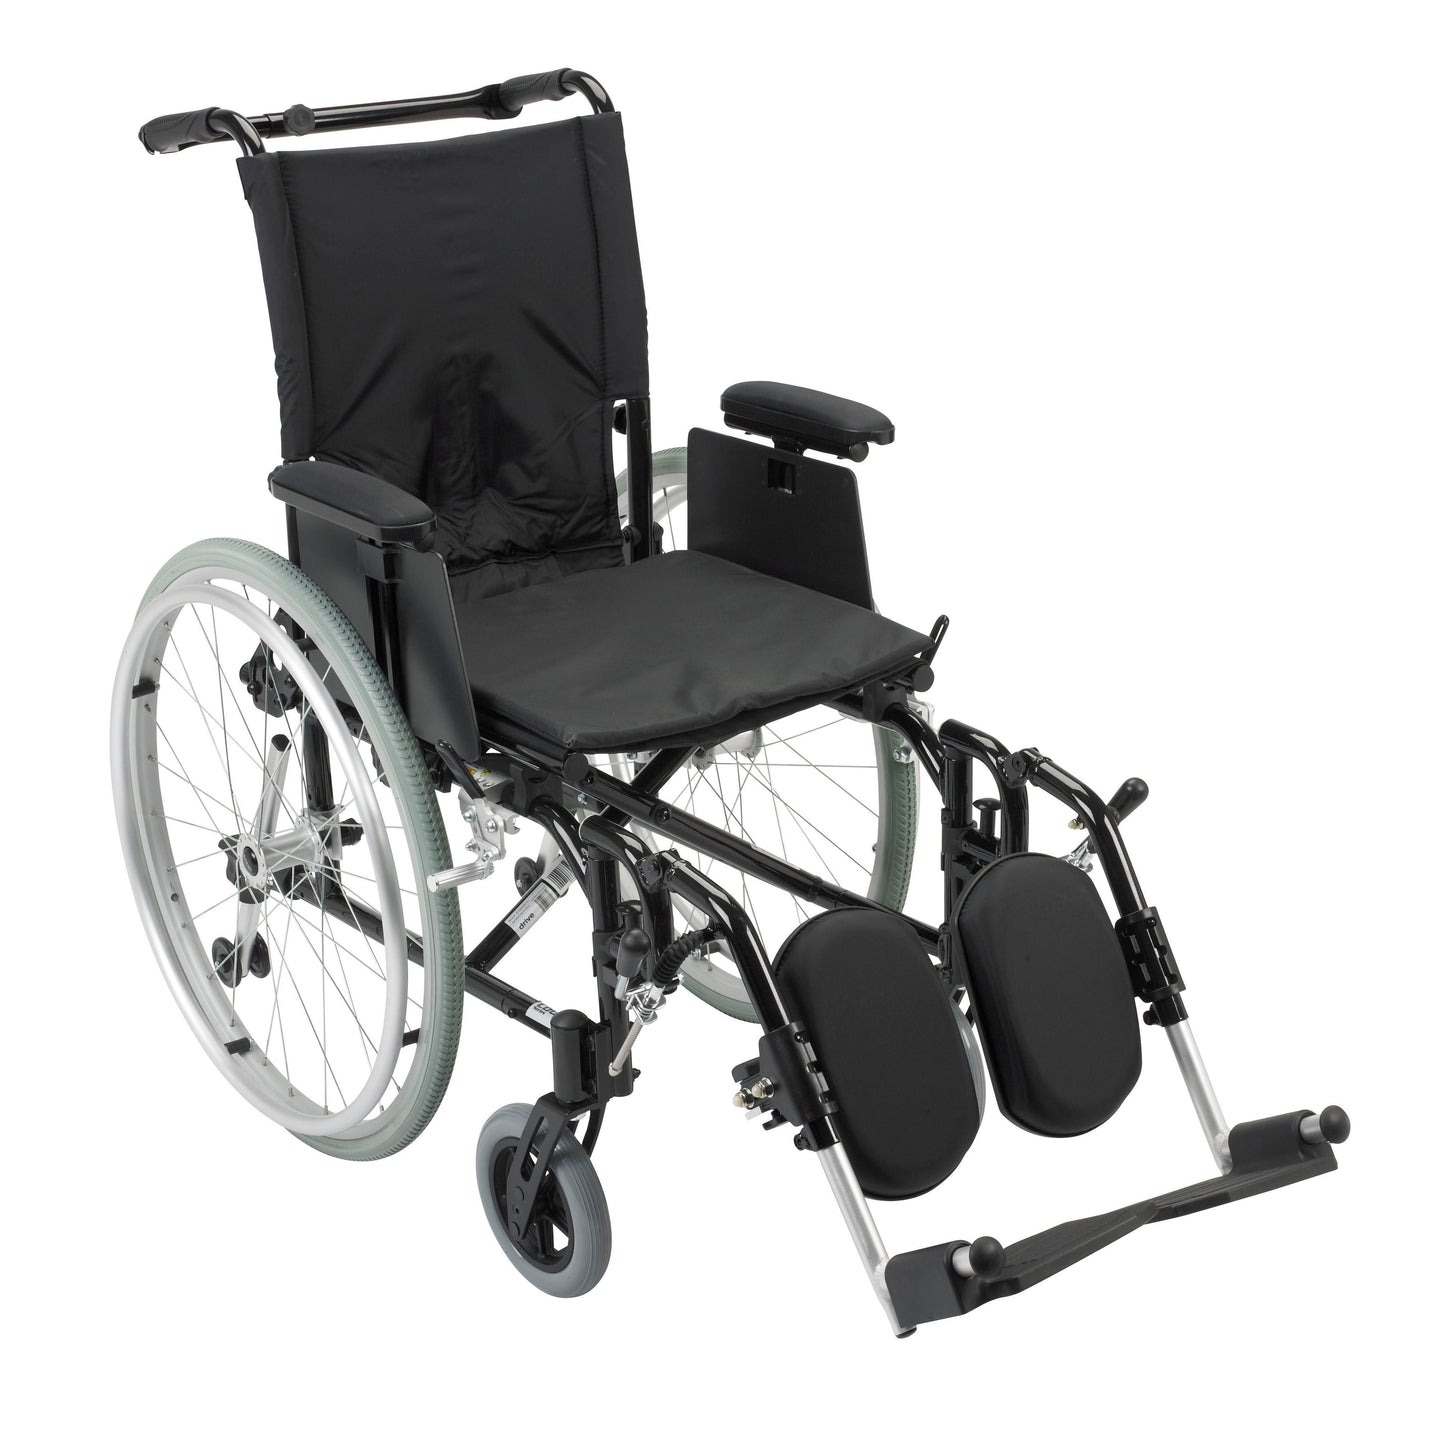 Drive Cougar Ultra Lightweight Rehab Wheelchair- Elevating Leg Rests- 16